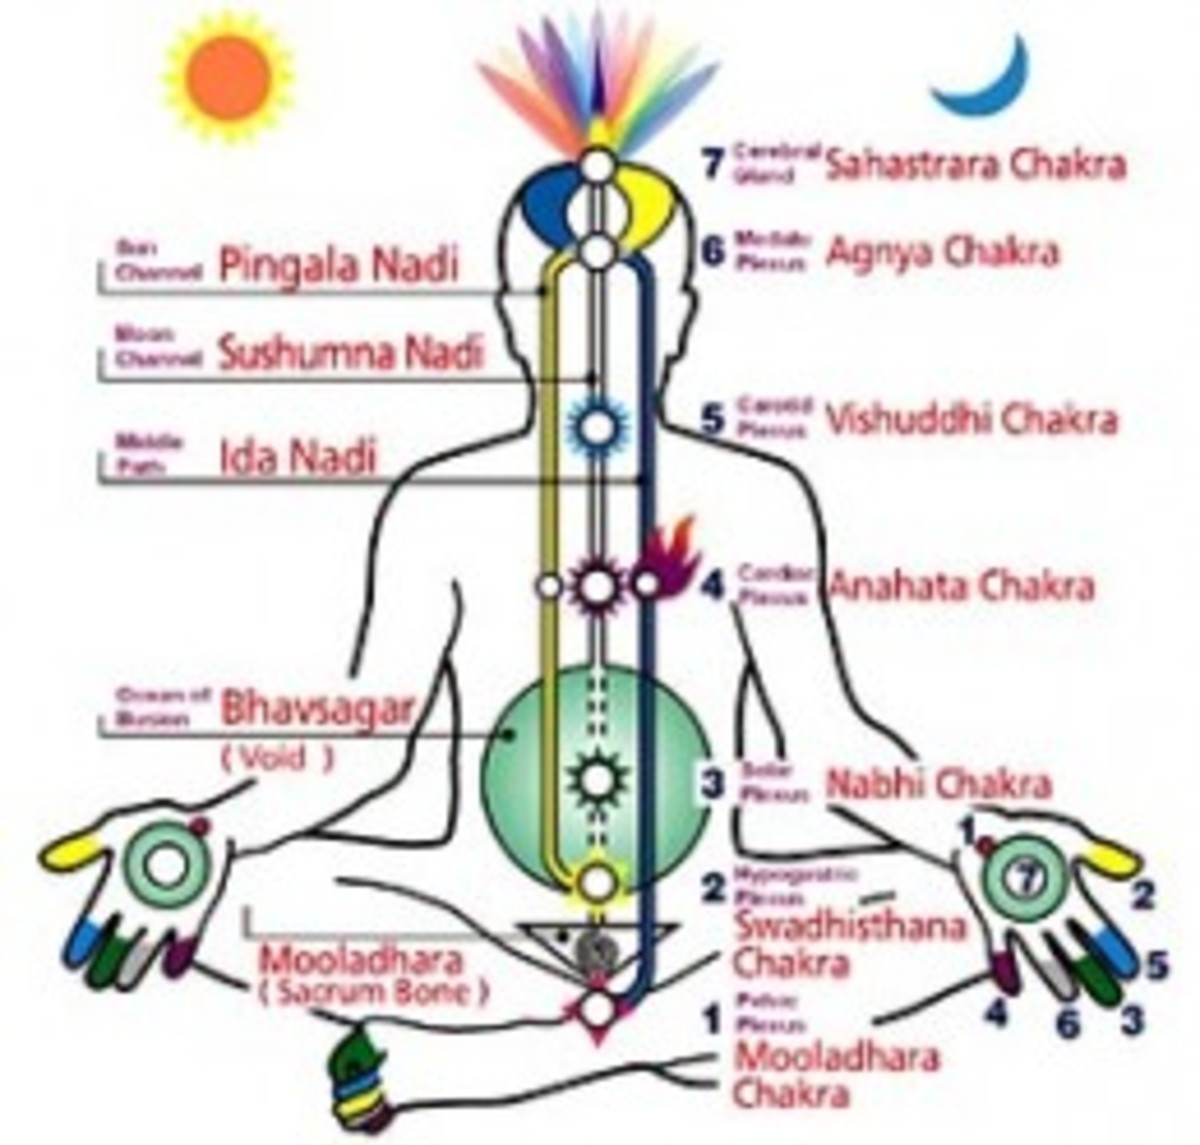 The awakening of Kundalini energy can be triggered by an advanced spiritual teacher or guru. Among the most common manifestations are unmotivated and unnatural laughter or crying, talking tongues, and imitating a variety of animal sounds.